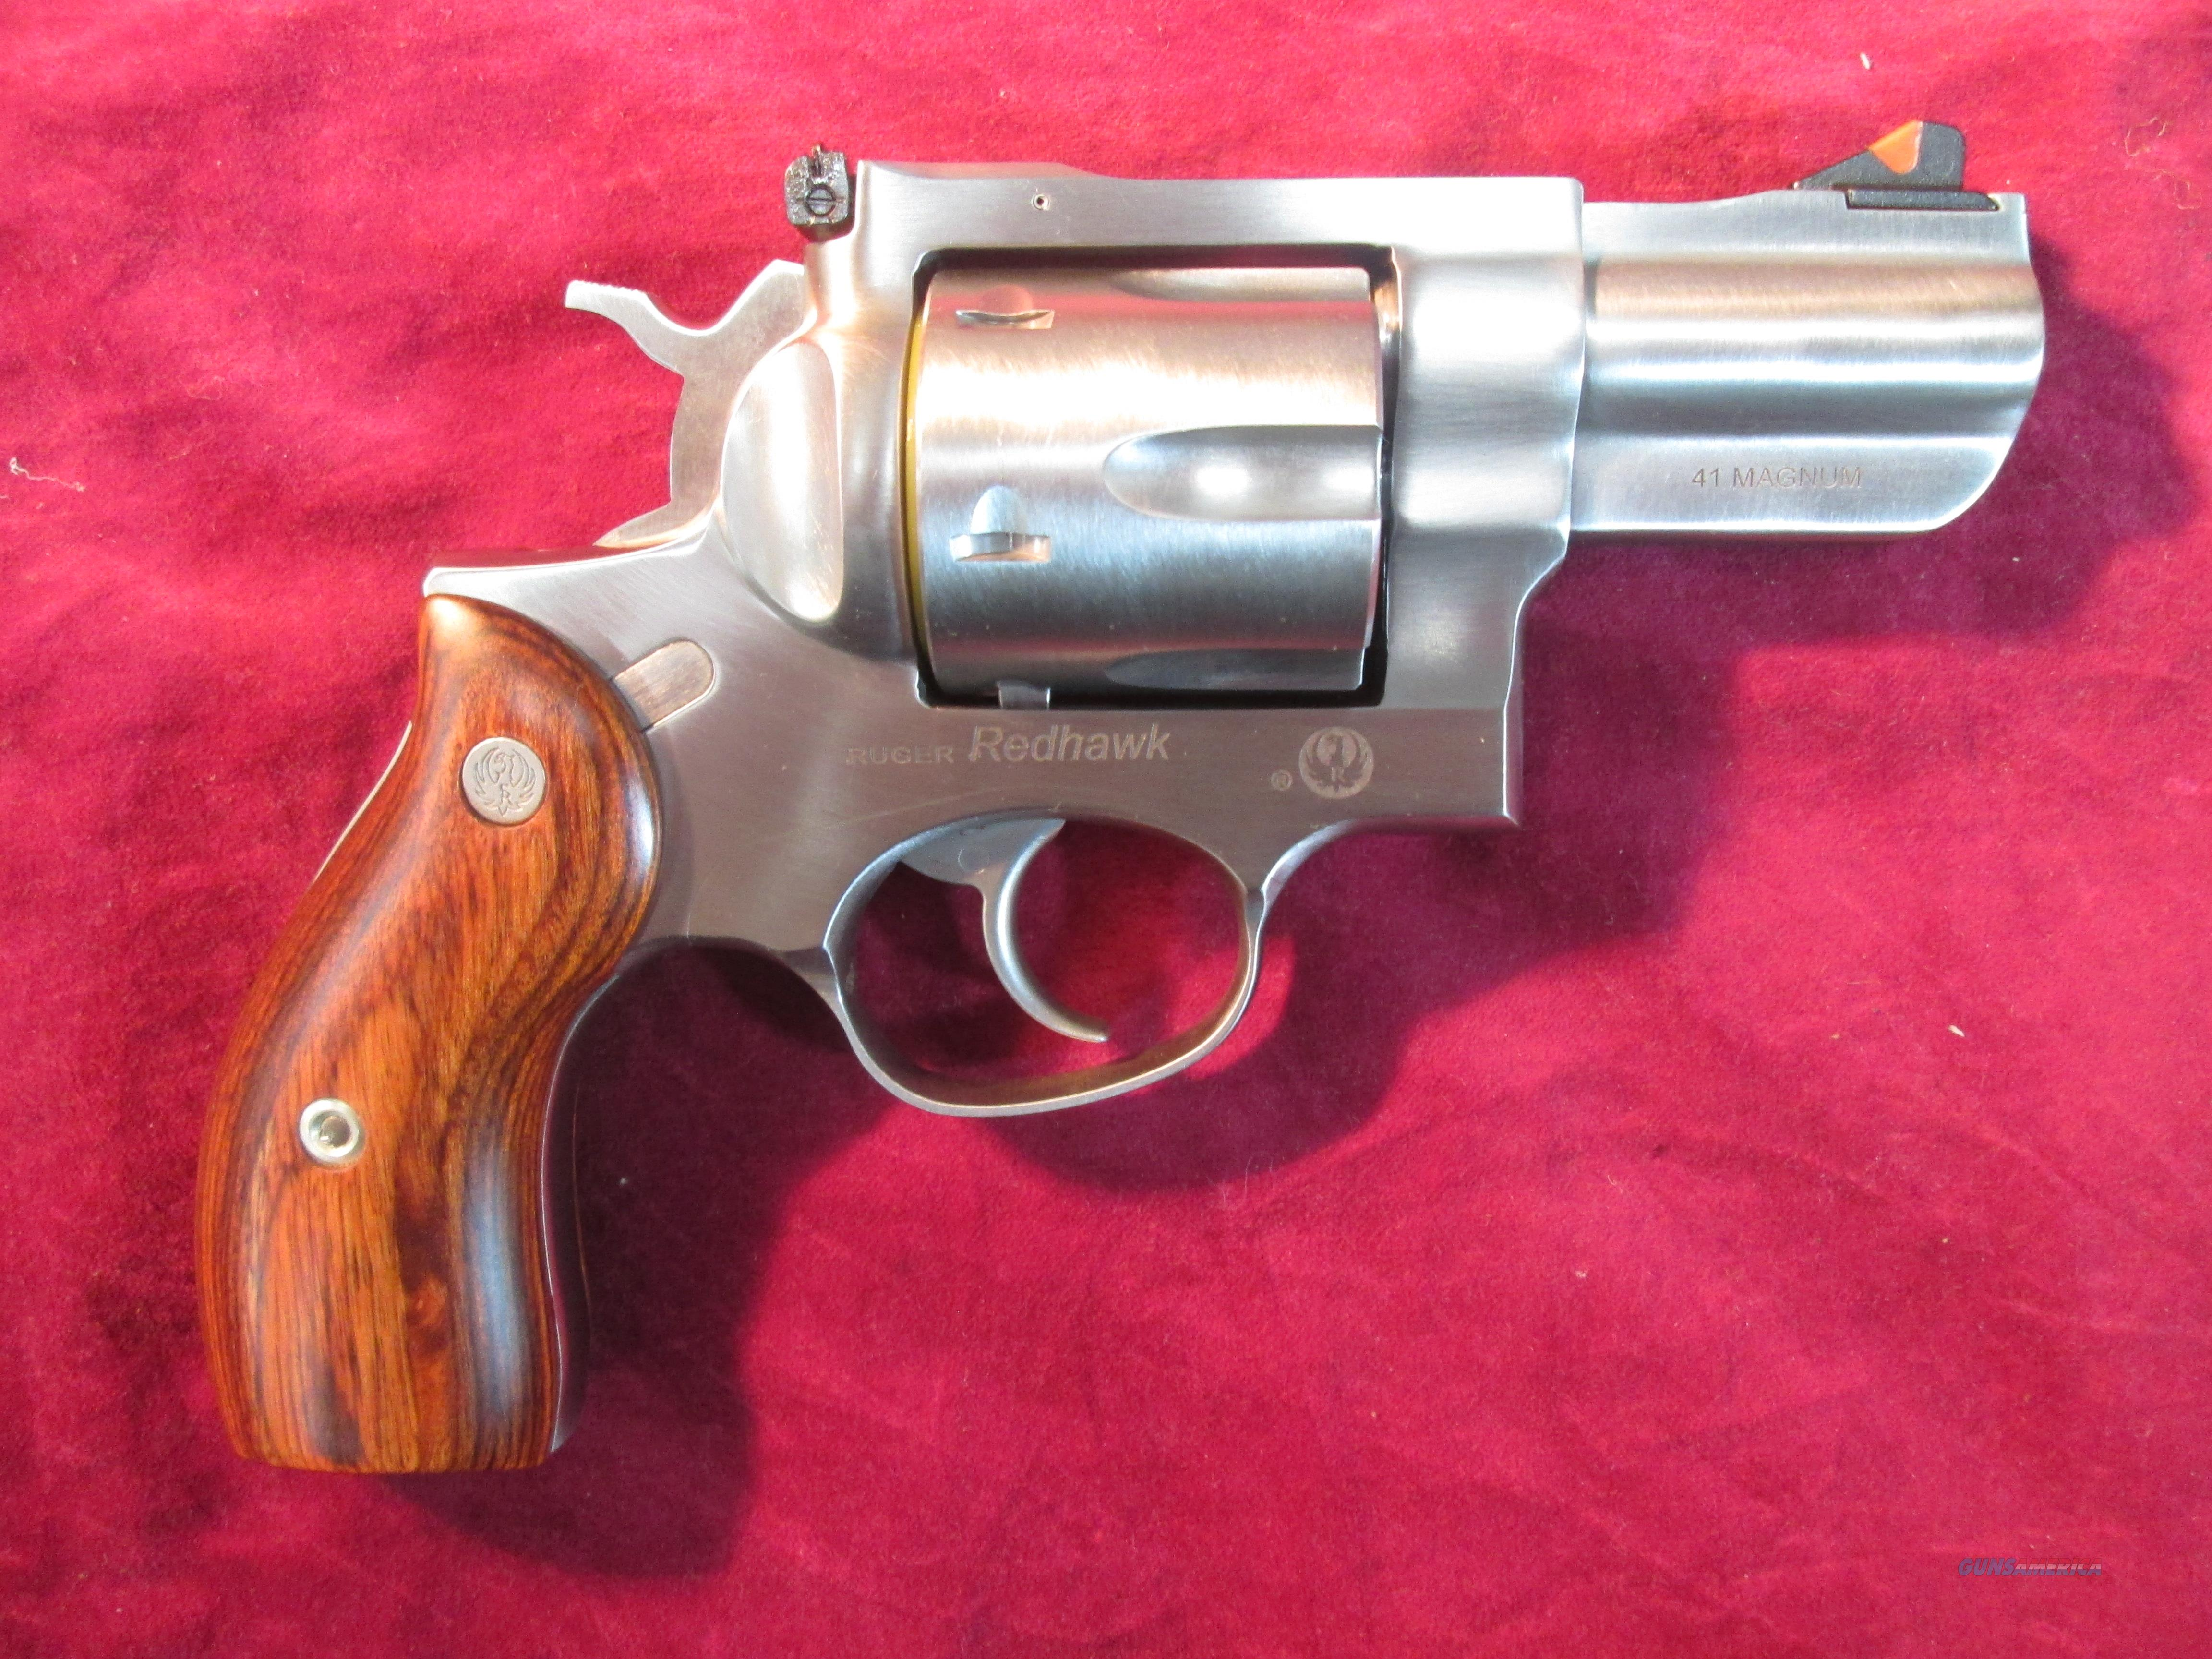 "RUGER REDHAWK 41MAGNUM 2.7"" STAINLESS NEW (05034)   Guns > Pistols > Ruger Double Action Revolver > Redhawk Type"